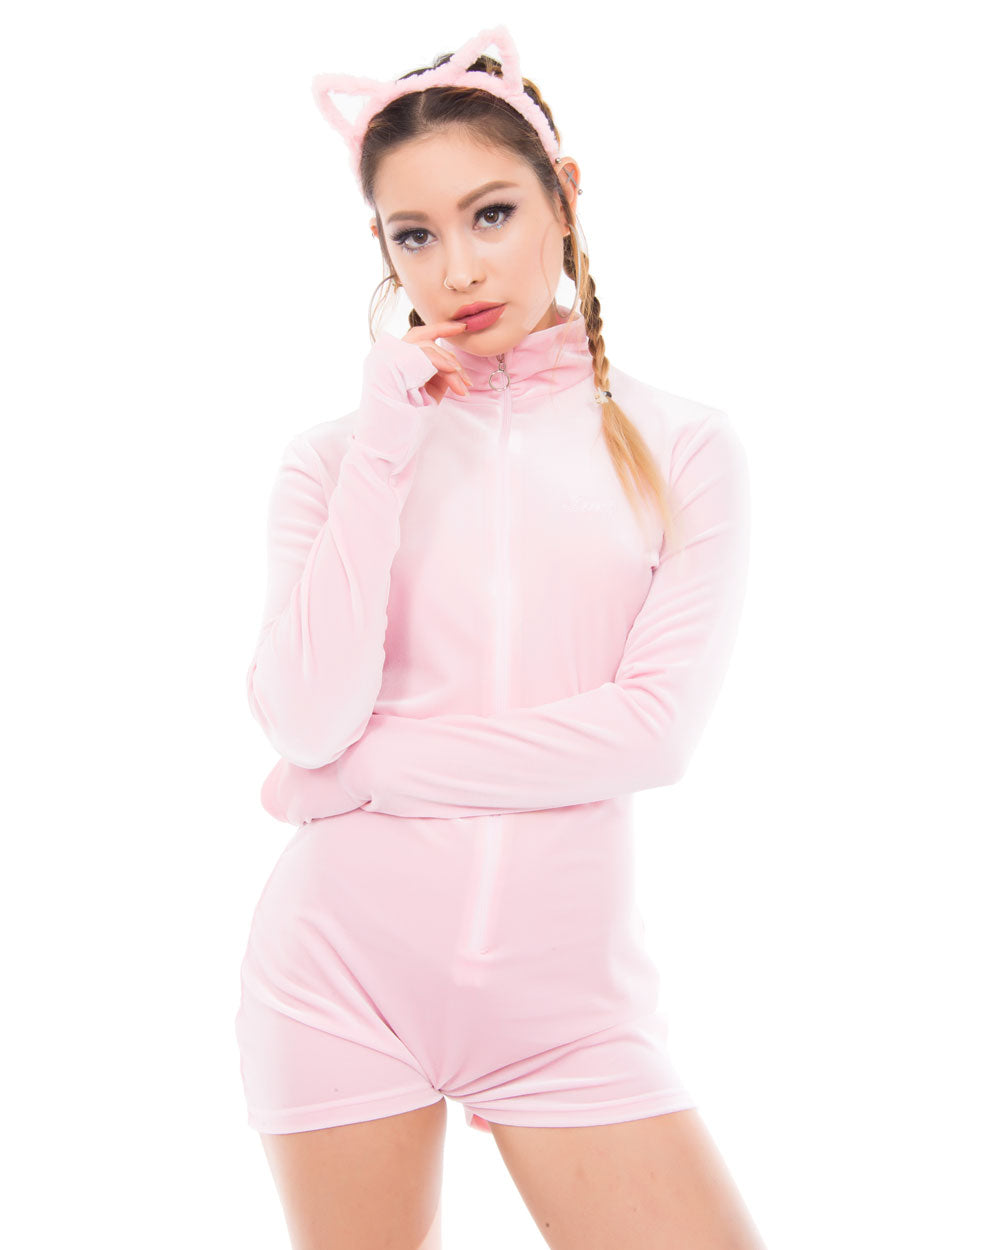 PINK FRIDAY VELVET BODYSUIT